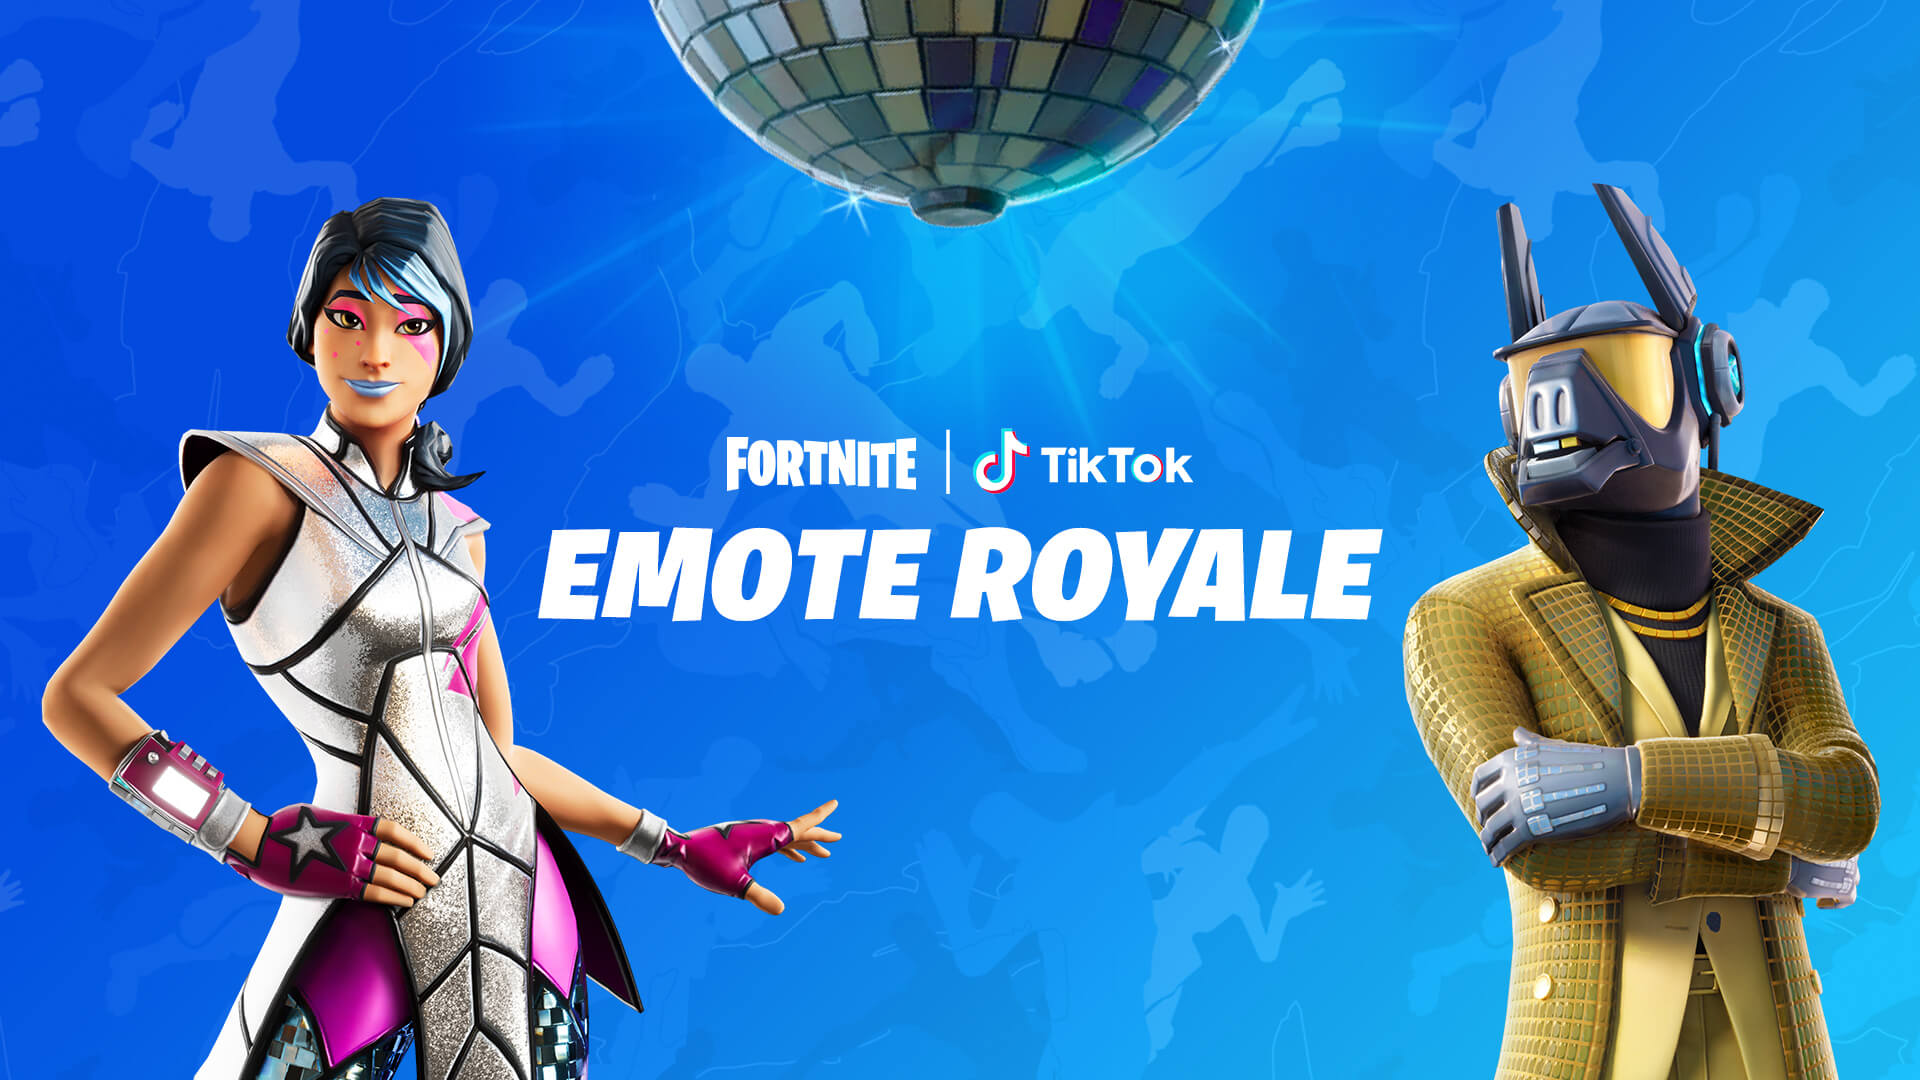 """Fortnite"" & TikTok Come Together For An Emote Contest"